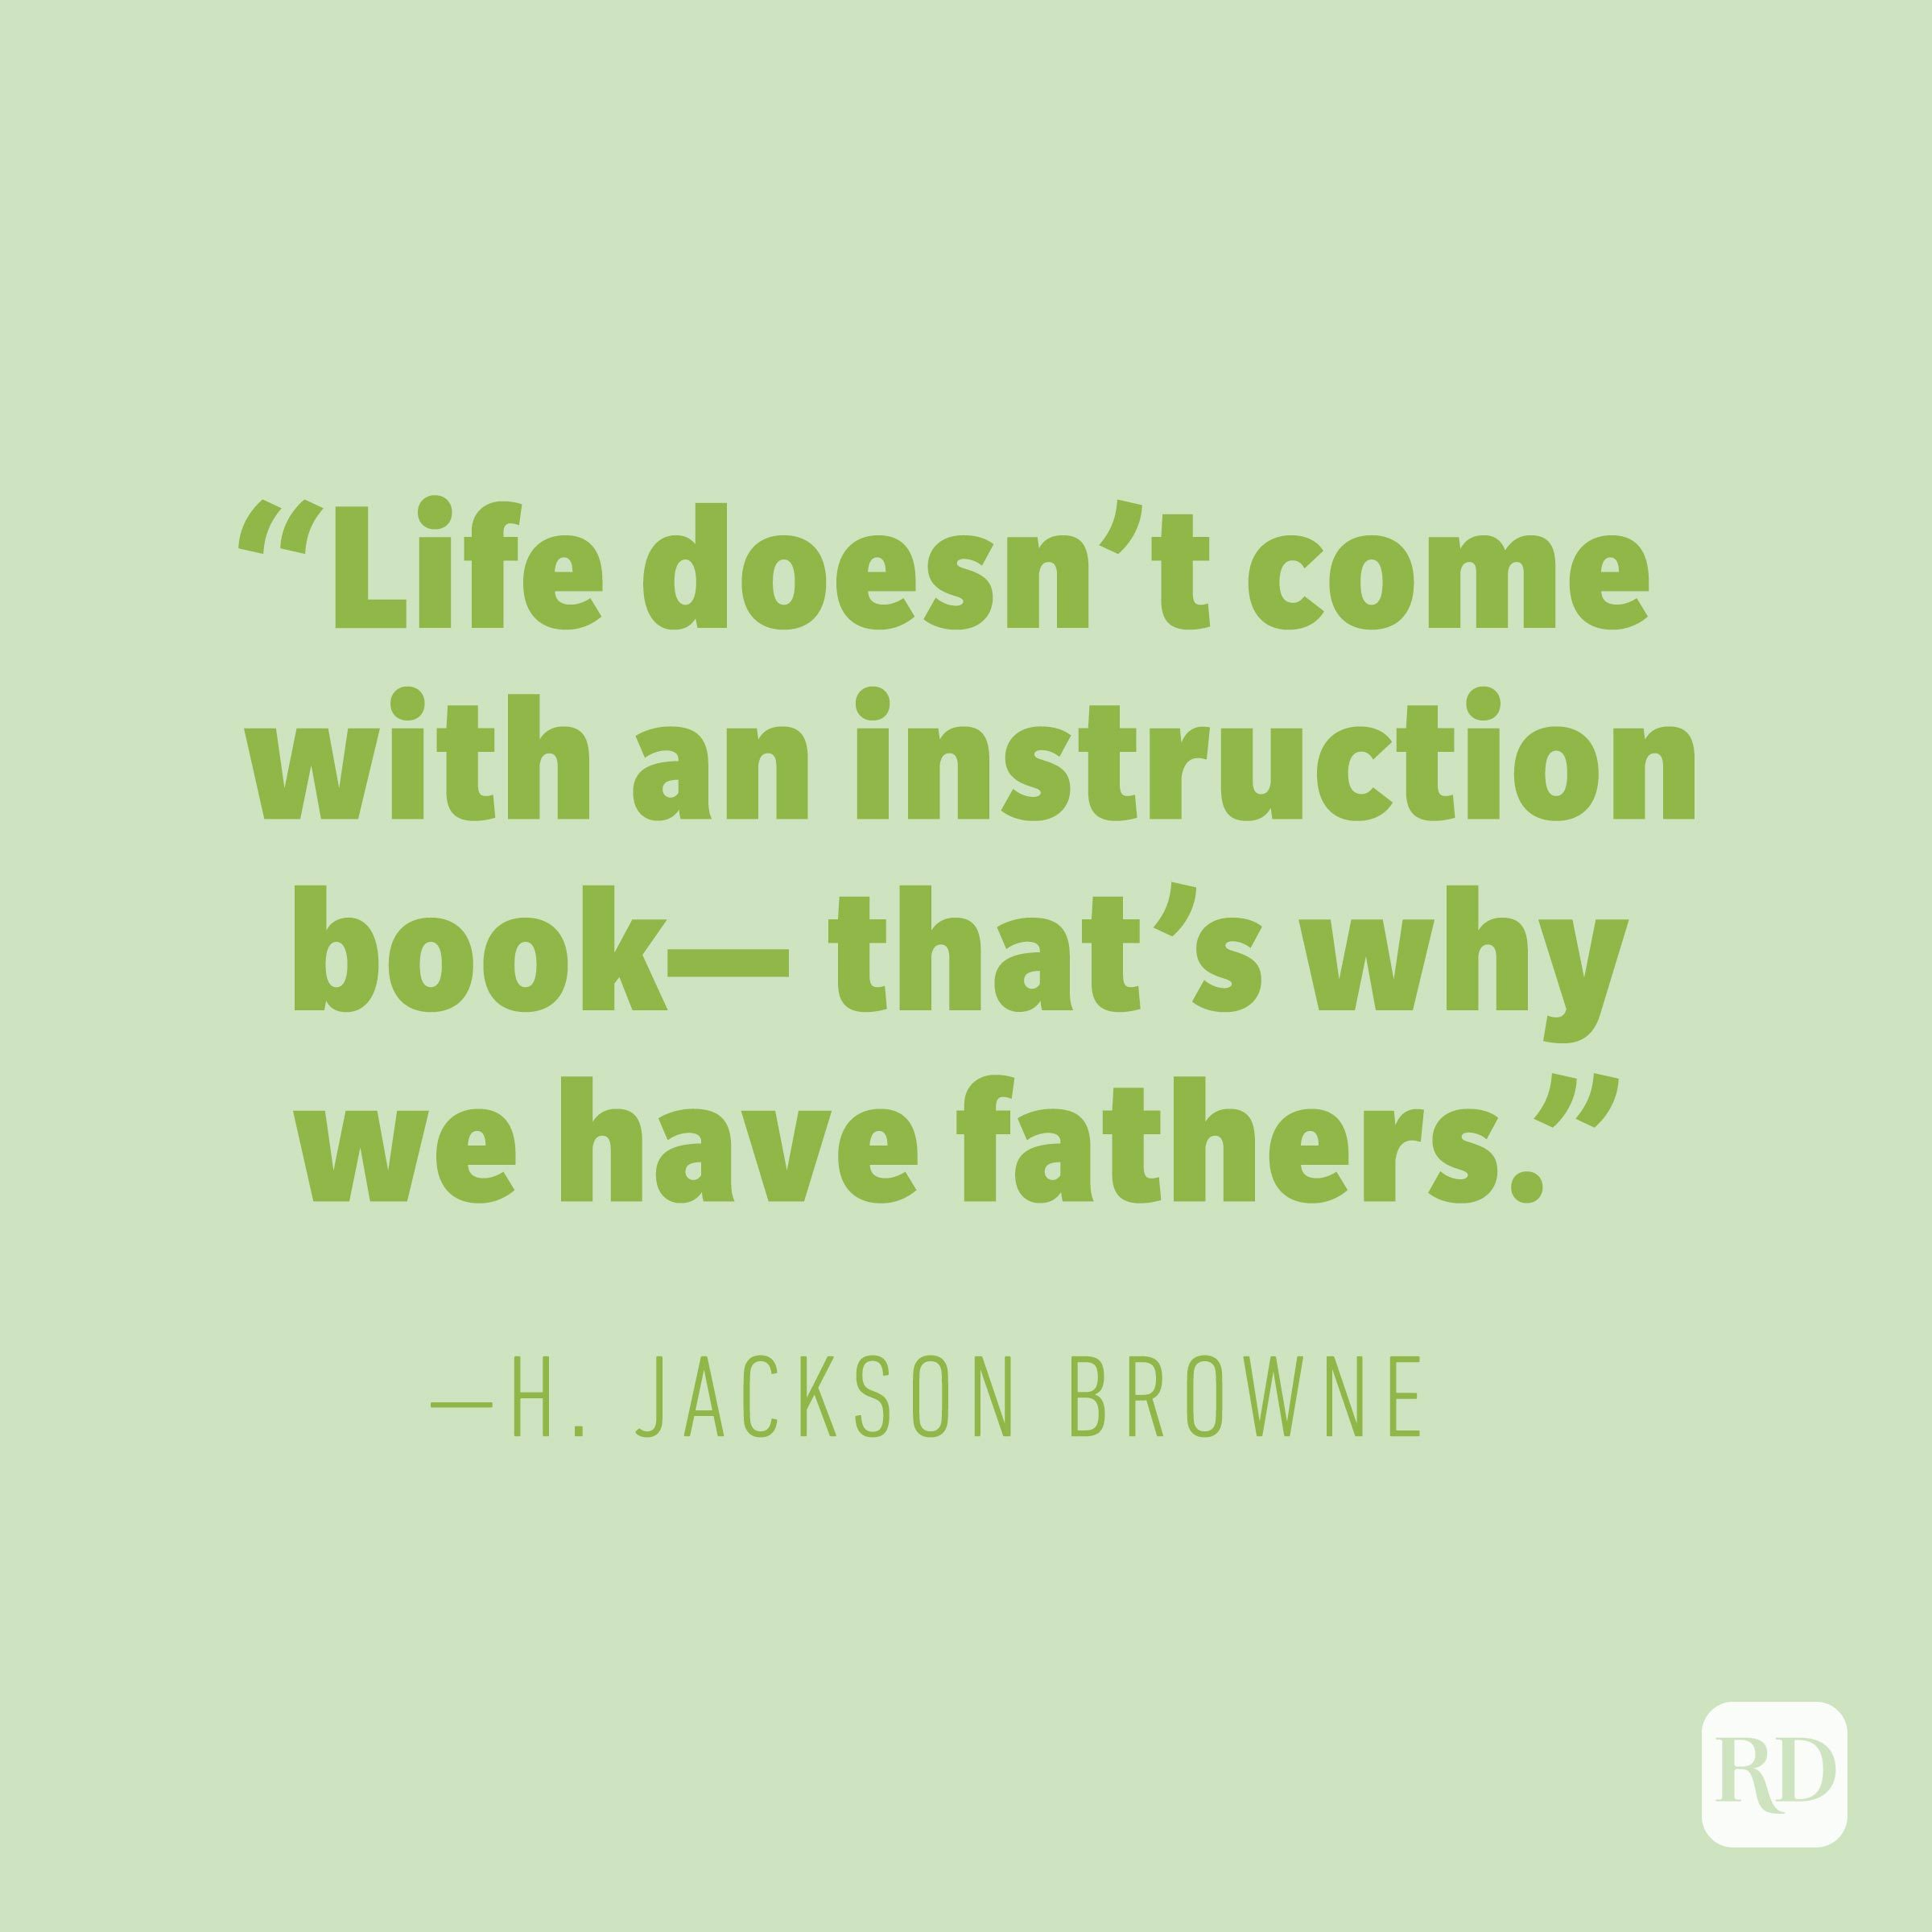 """Life doesn't come with an instruction book—that's why we have fathers."" —H. JACKSON BROWNE"